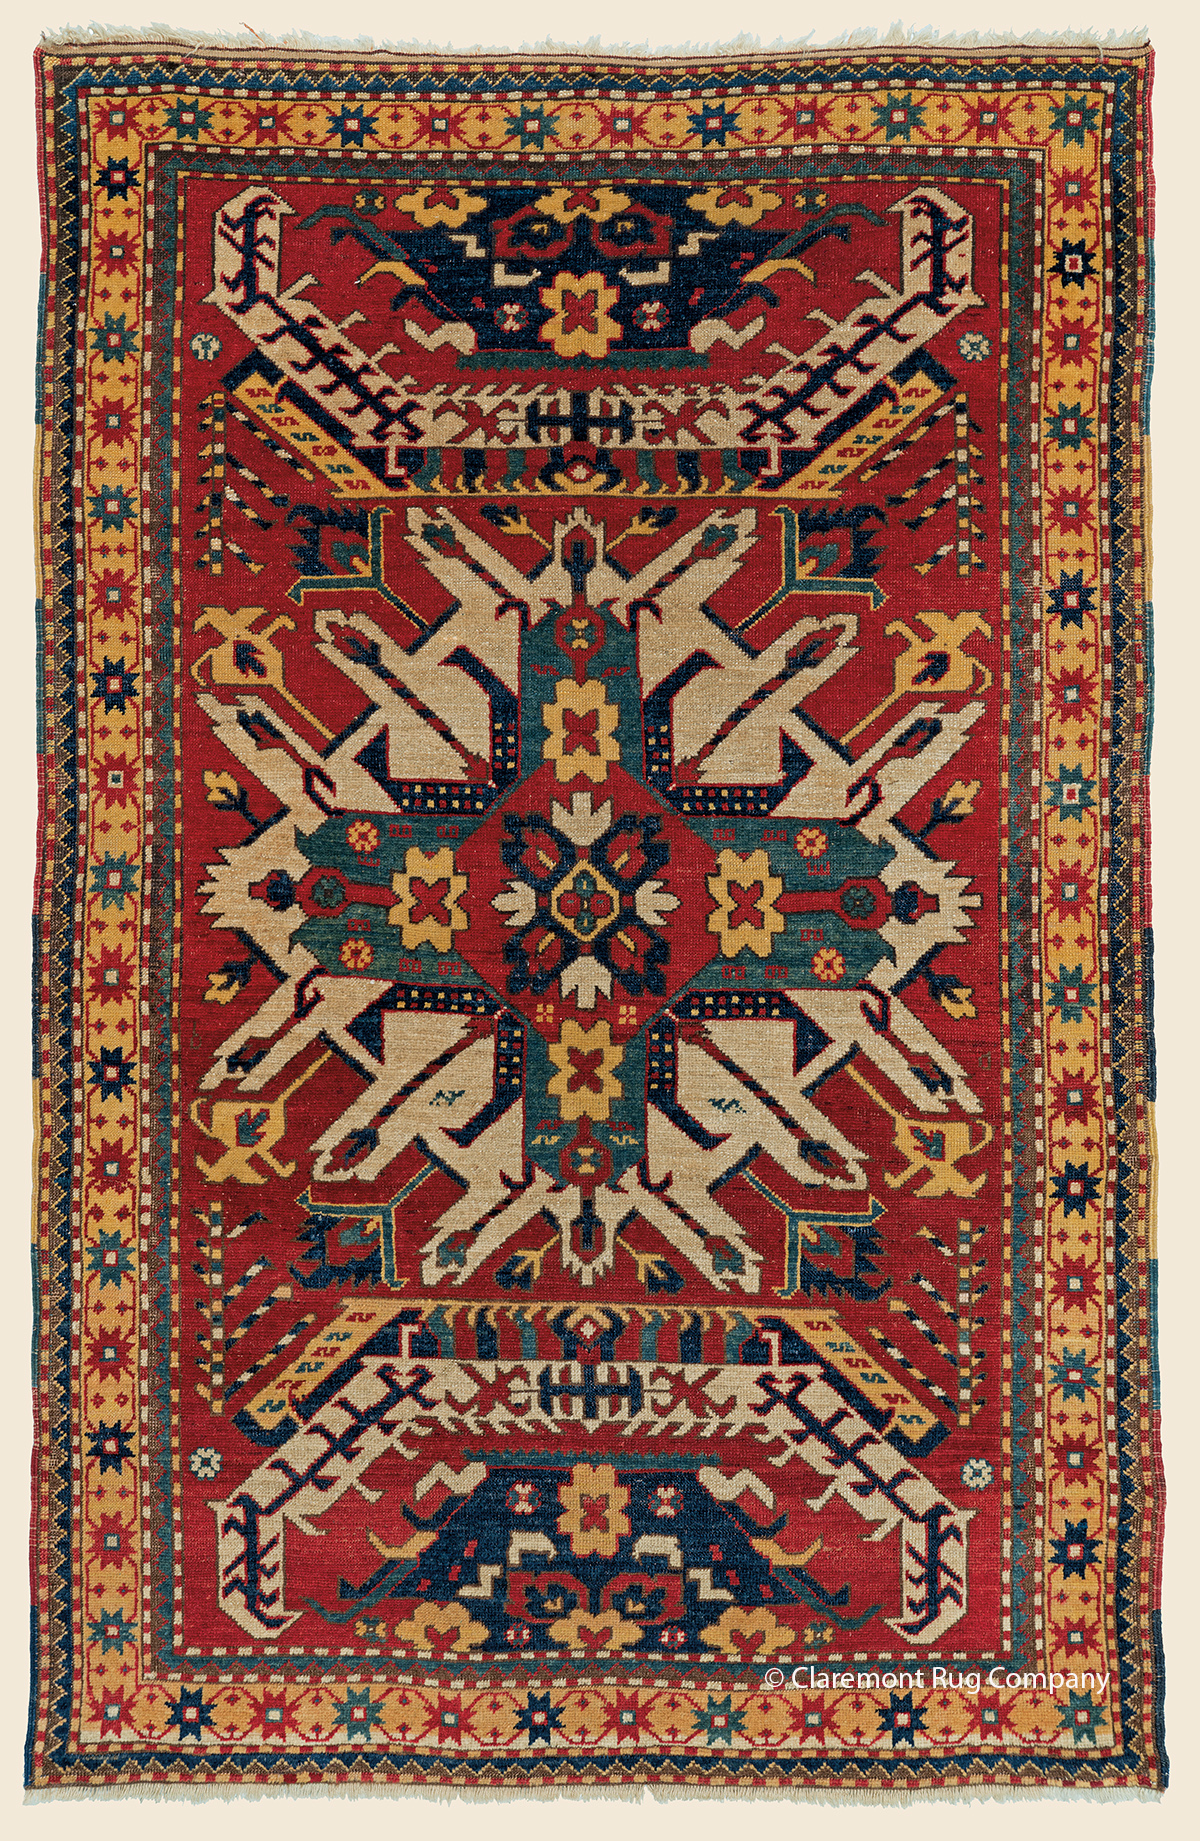 19th century Antique Caucasian Eagle Kazak with Sunburst medallion and abrash red ground